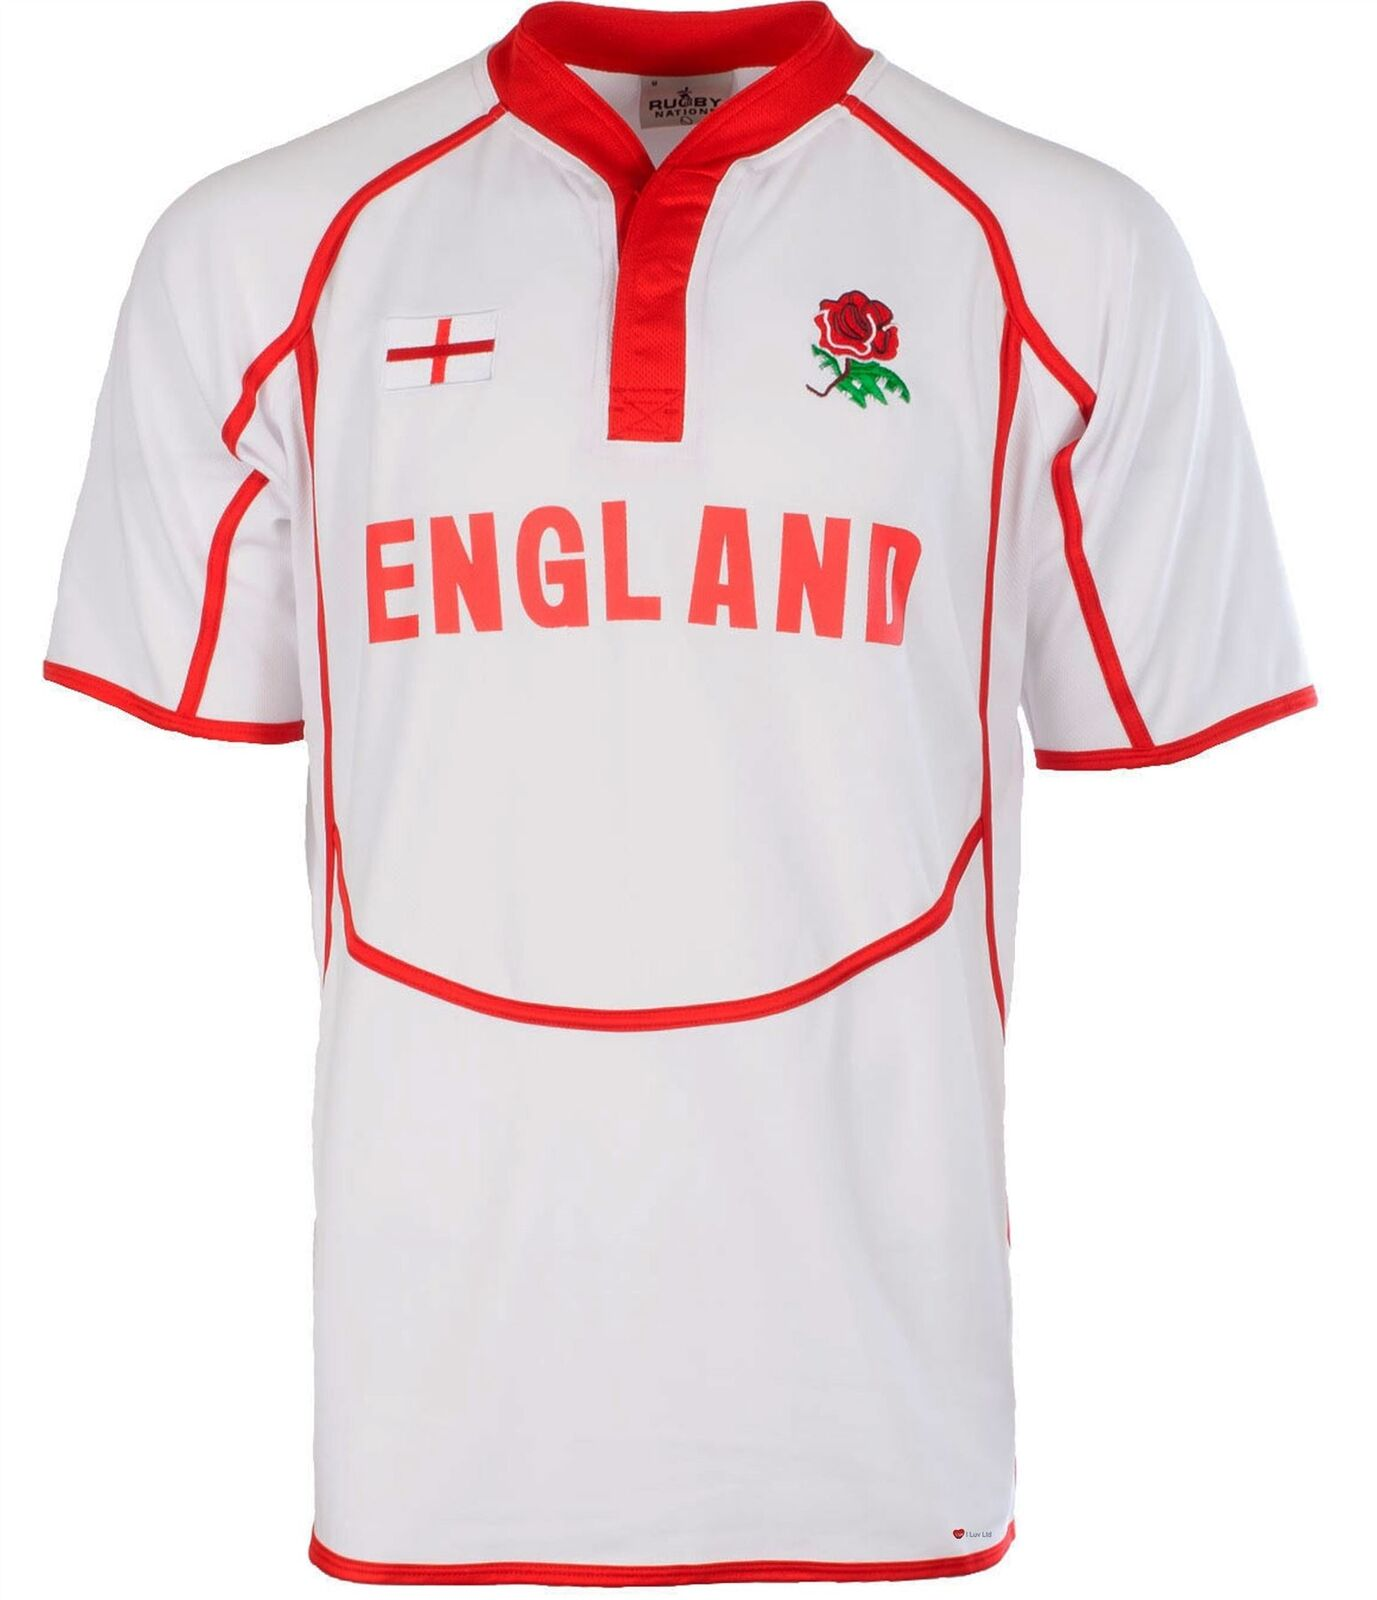 Gents Cooldry Style Rugby Shirt In England Colours Size X-Small